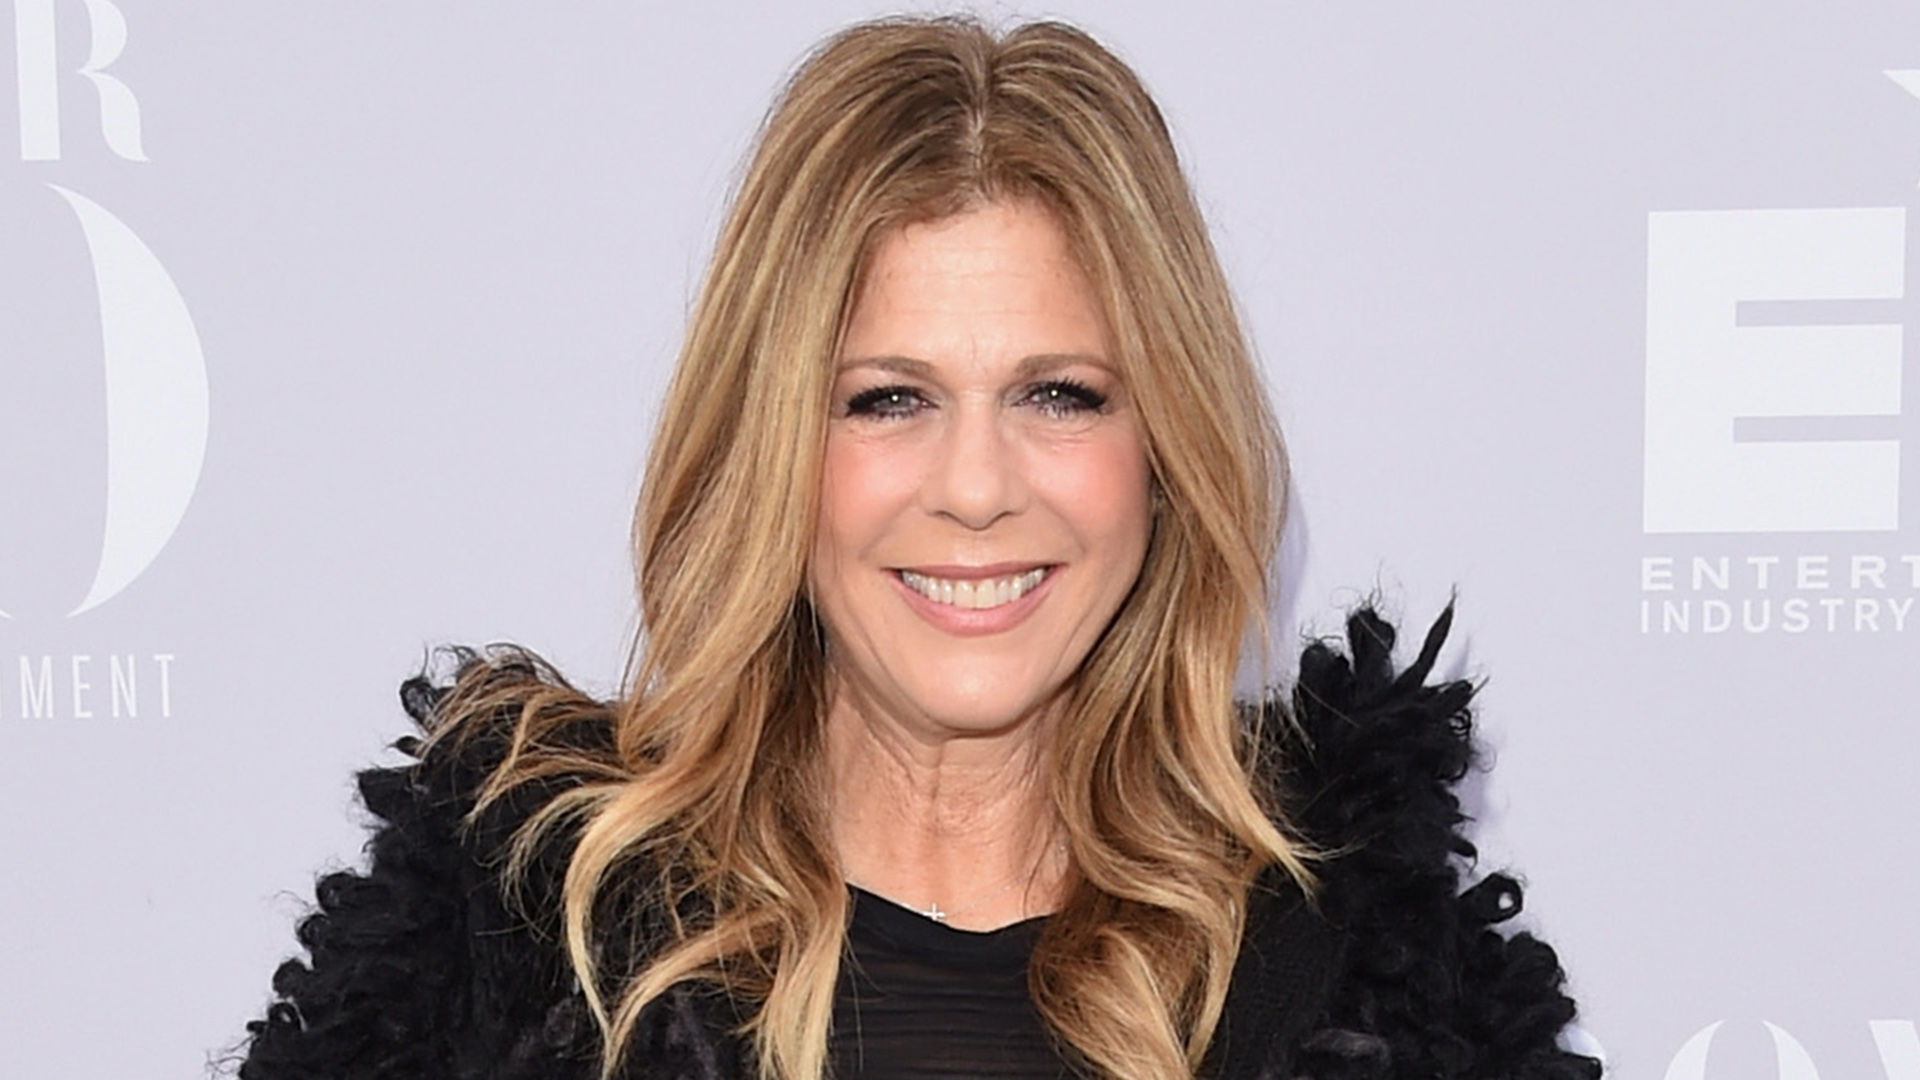 Rita Wilson earned a  million dollar salary, leaving the net worth at 20 million in 2017